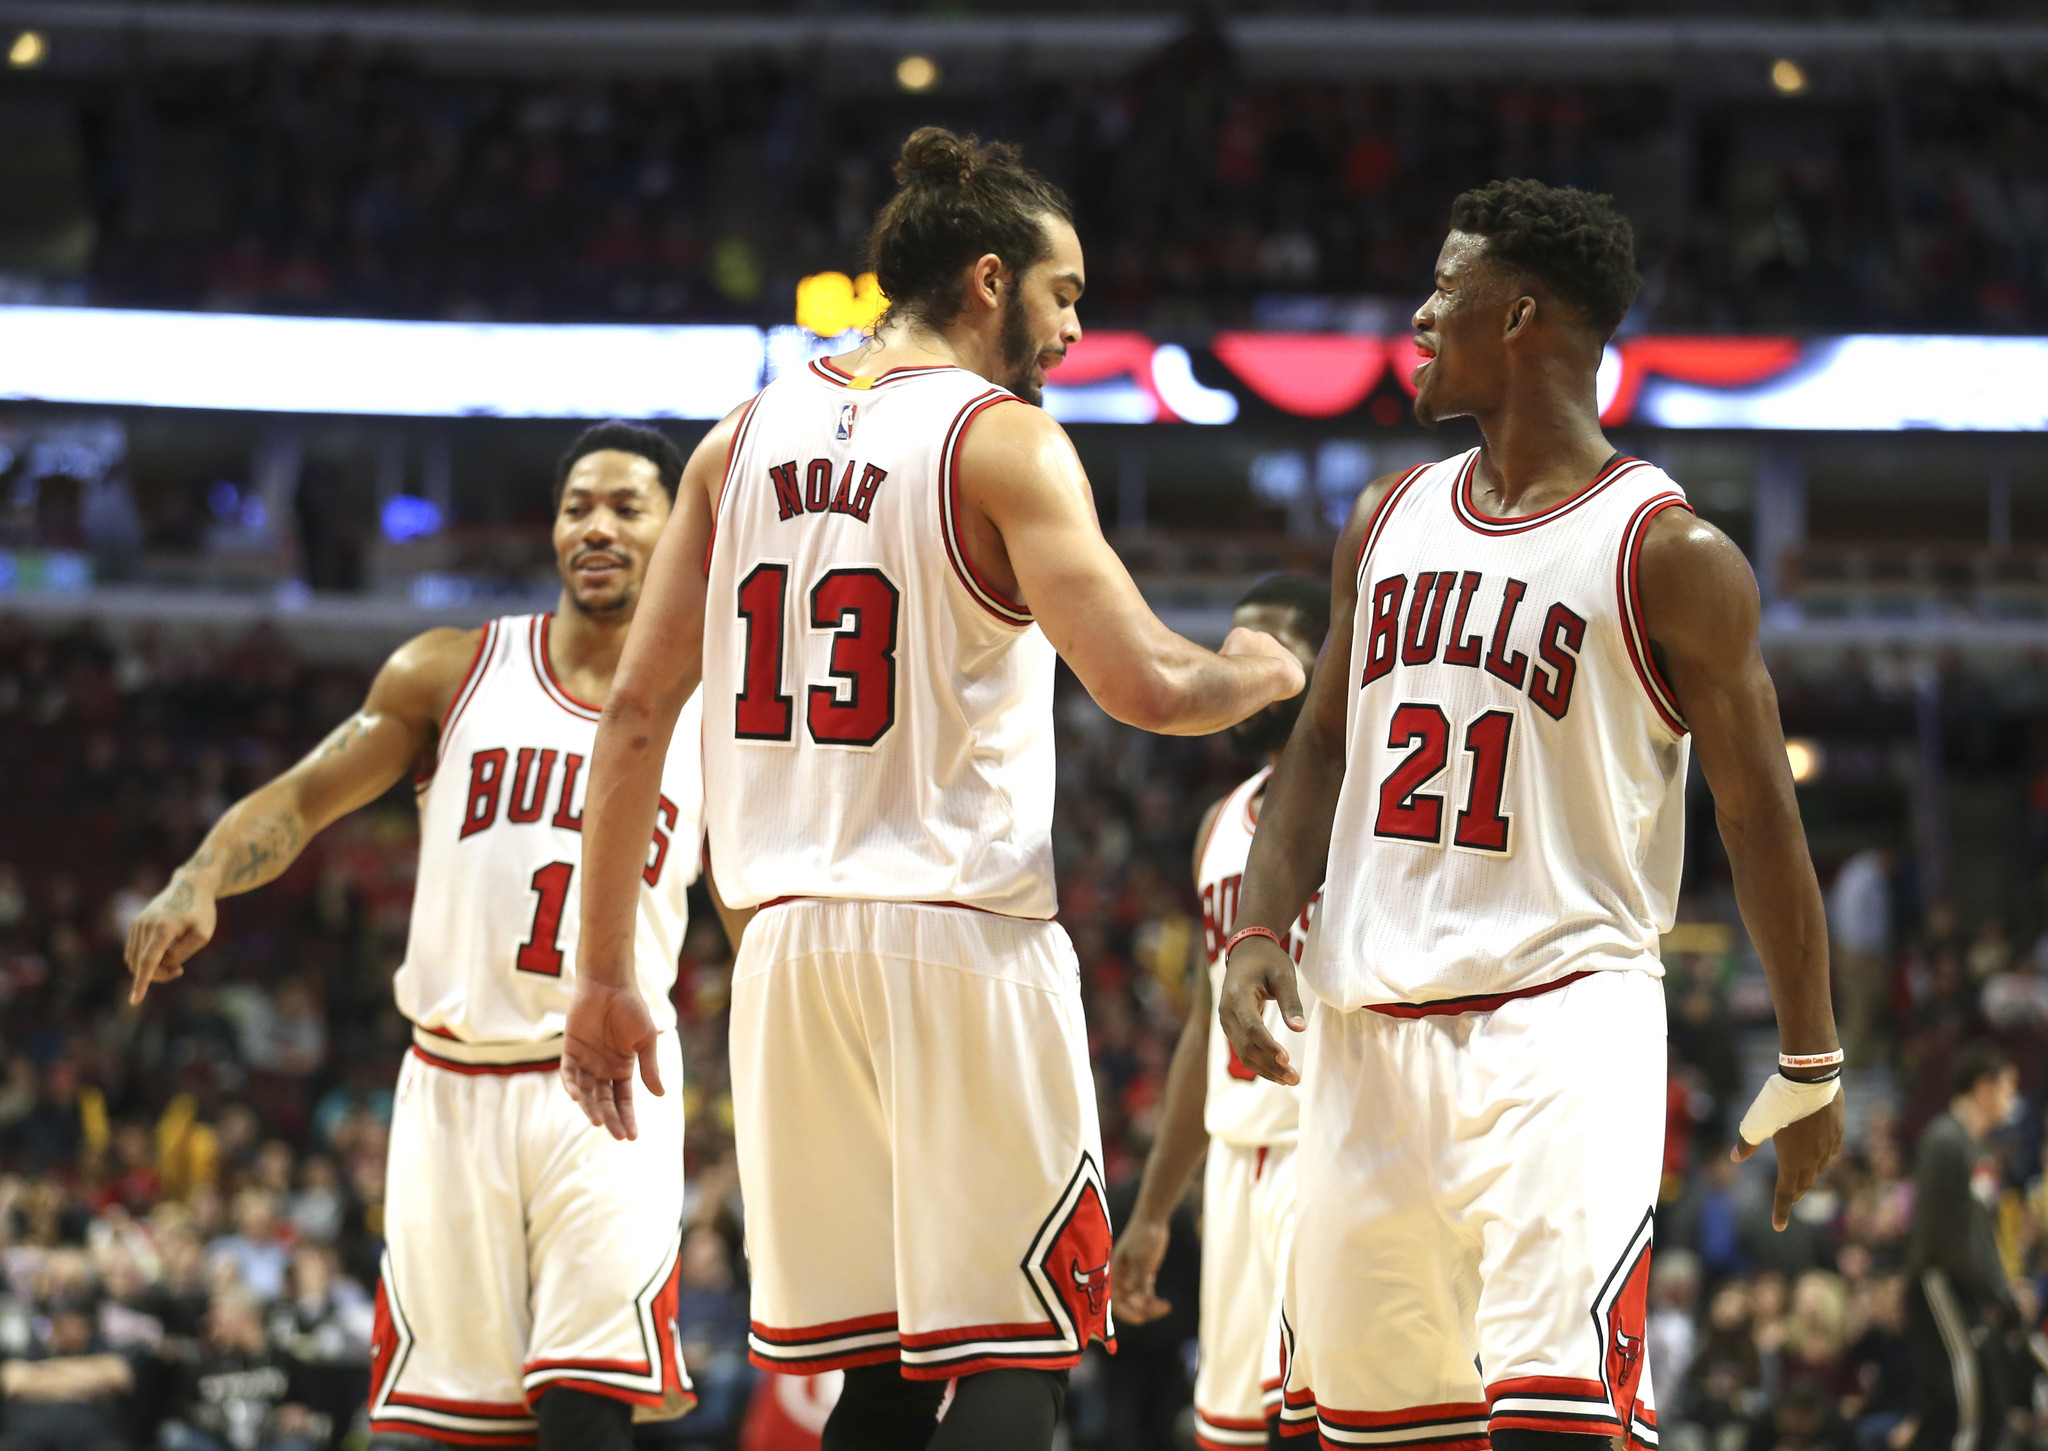 Derrick Rose-Jimmy Butler could become an All-Star pairing for Bulls